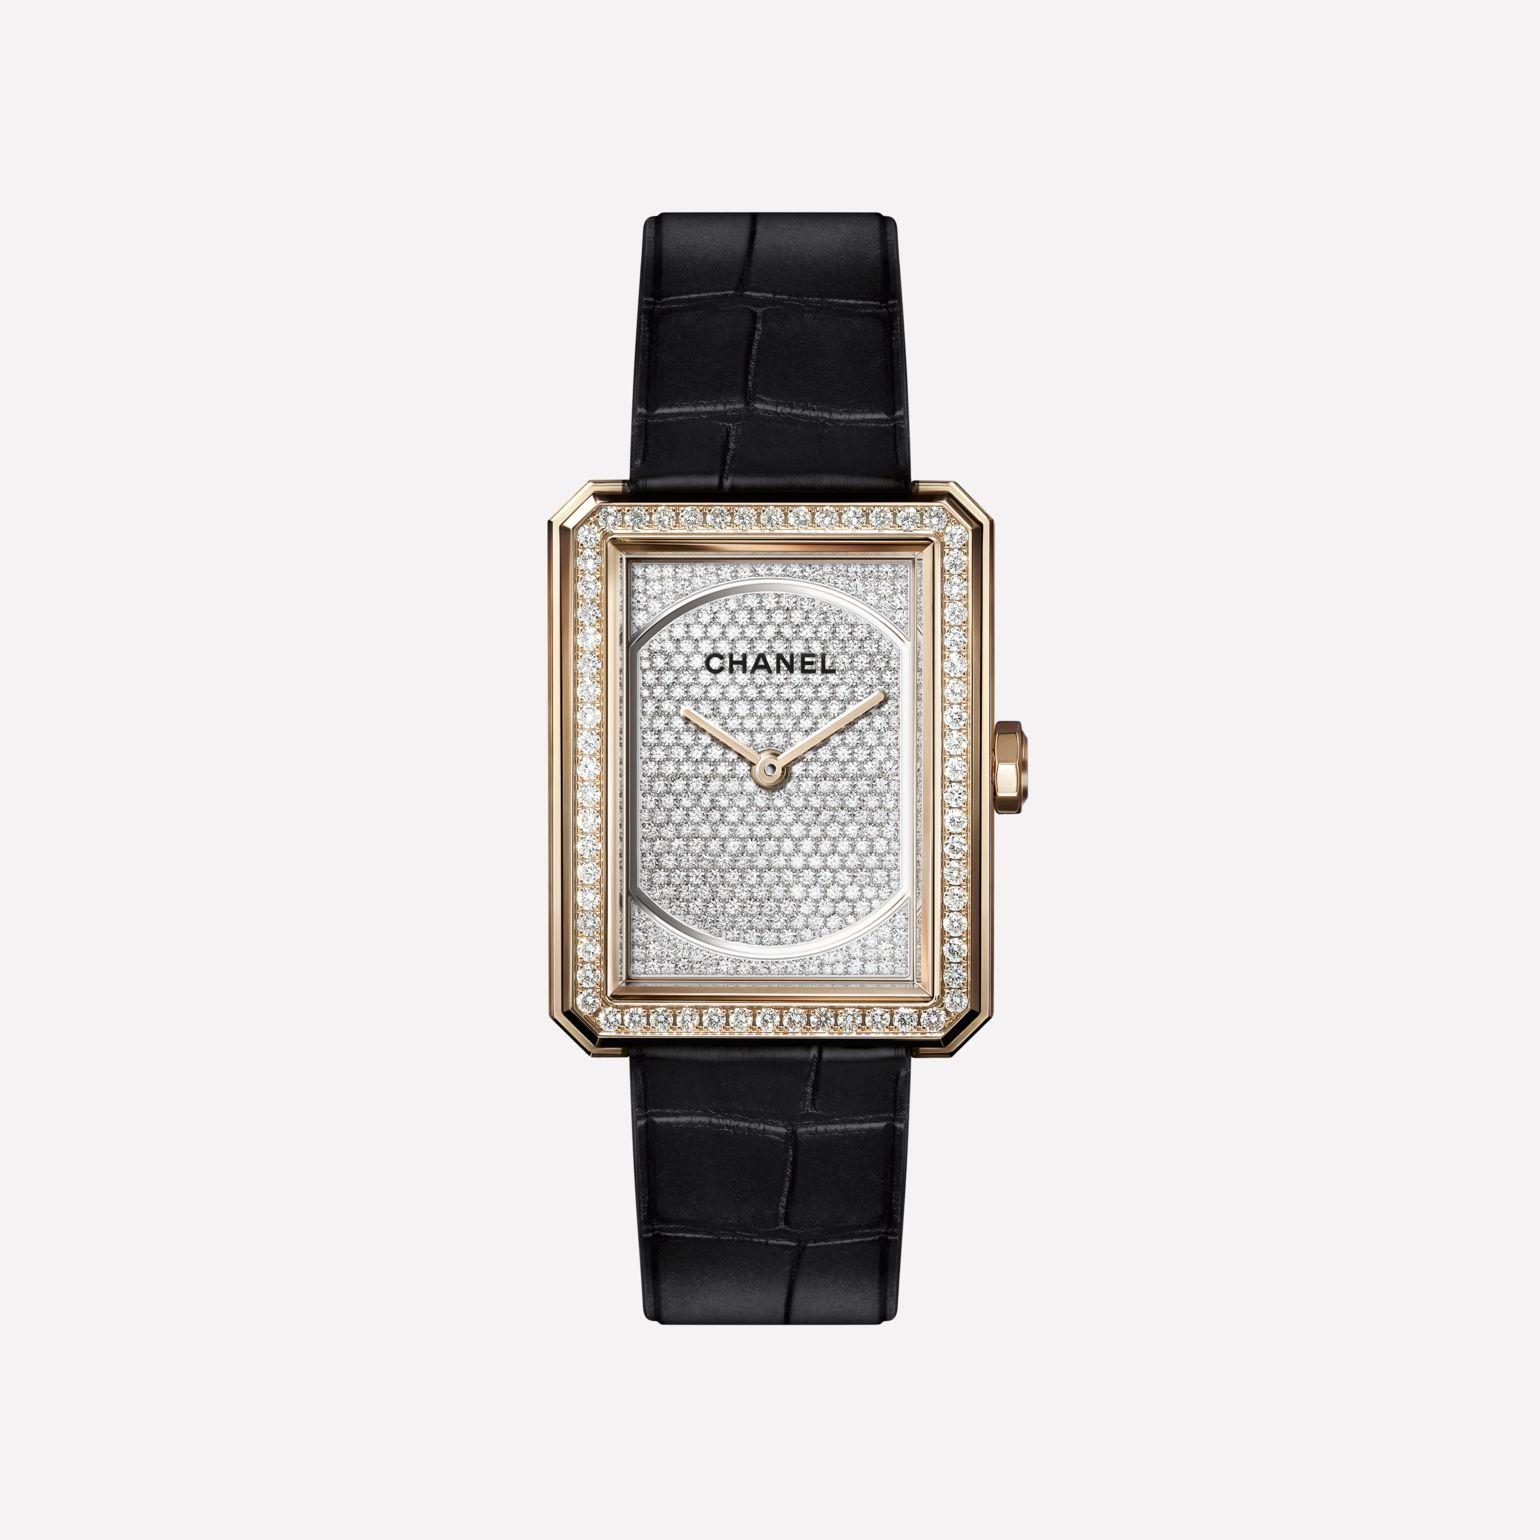 BOY∙FRIEND Medium version, BEIGE GOLD and dial set with diamonds, alligator strap